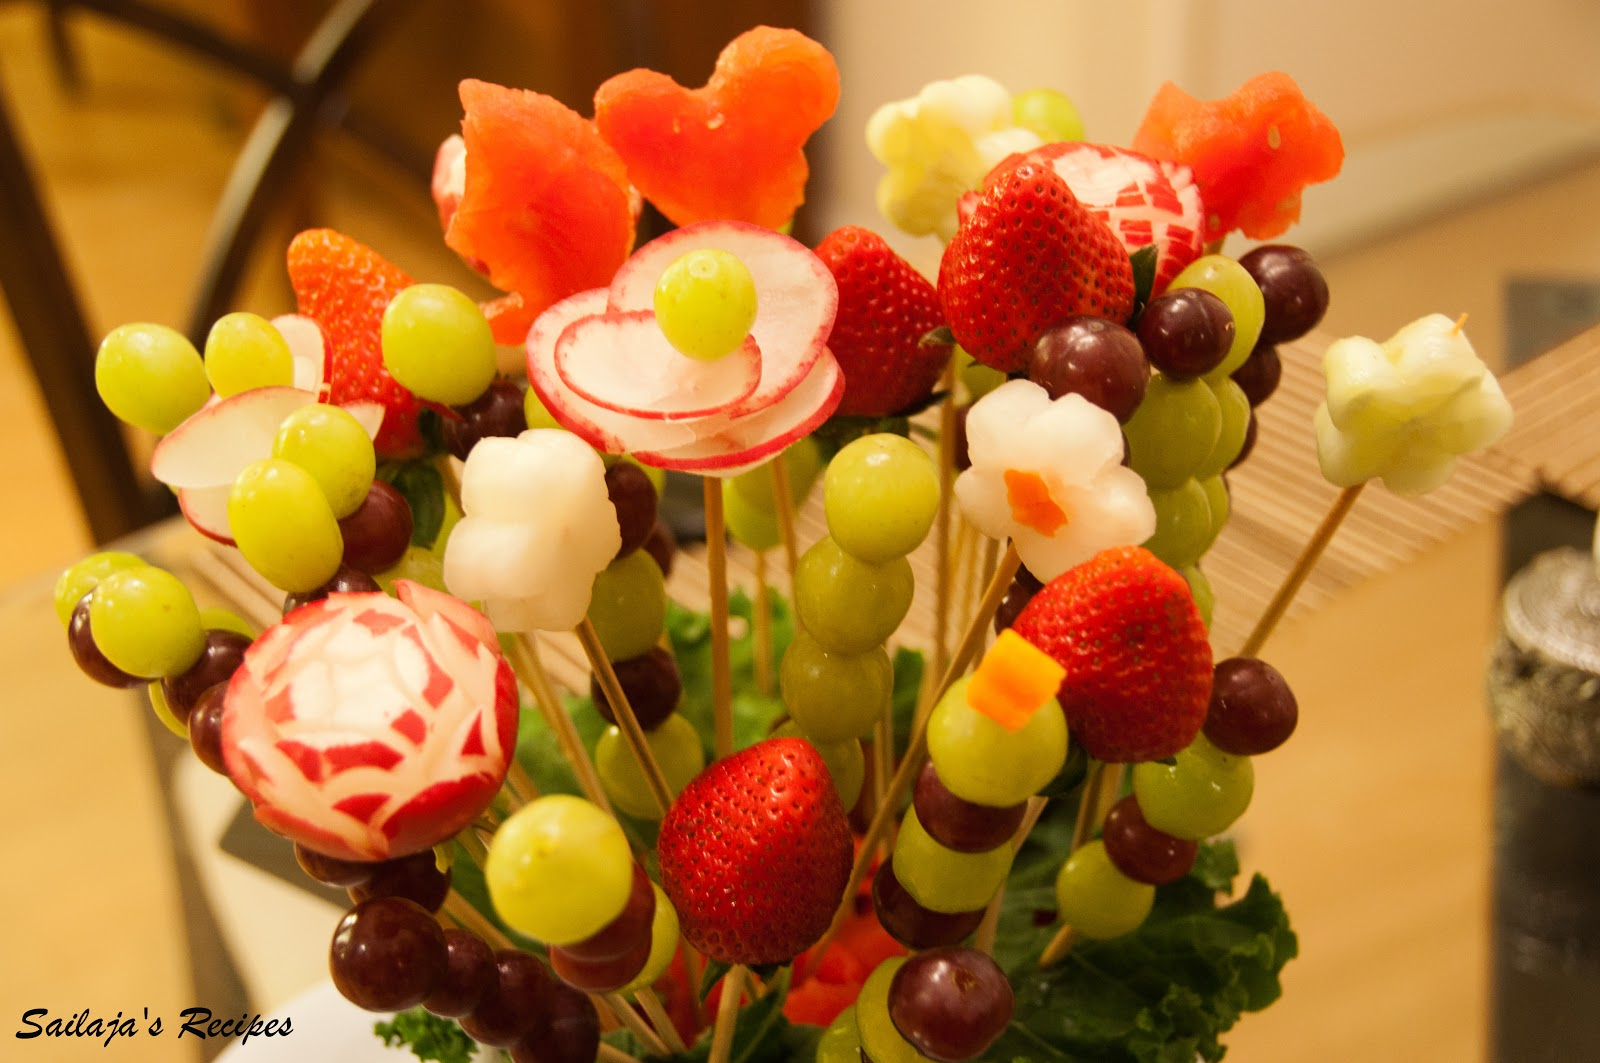 Sailaja s Recipes DIY Fruit Bouquet Edible Arrangements